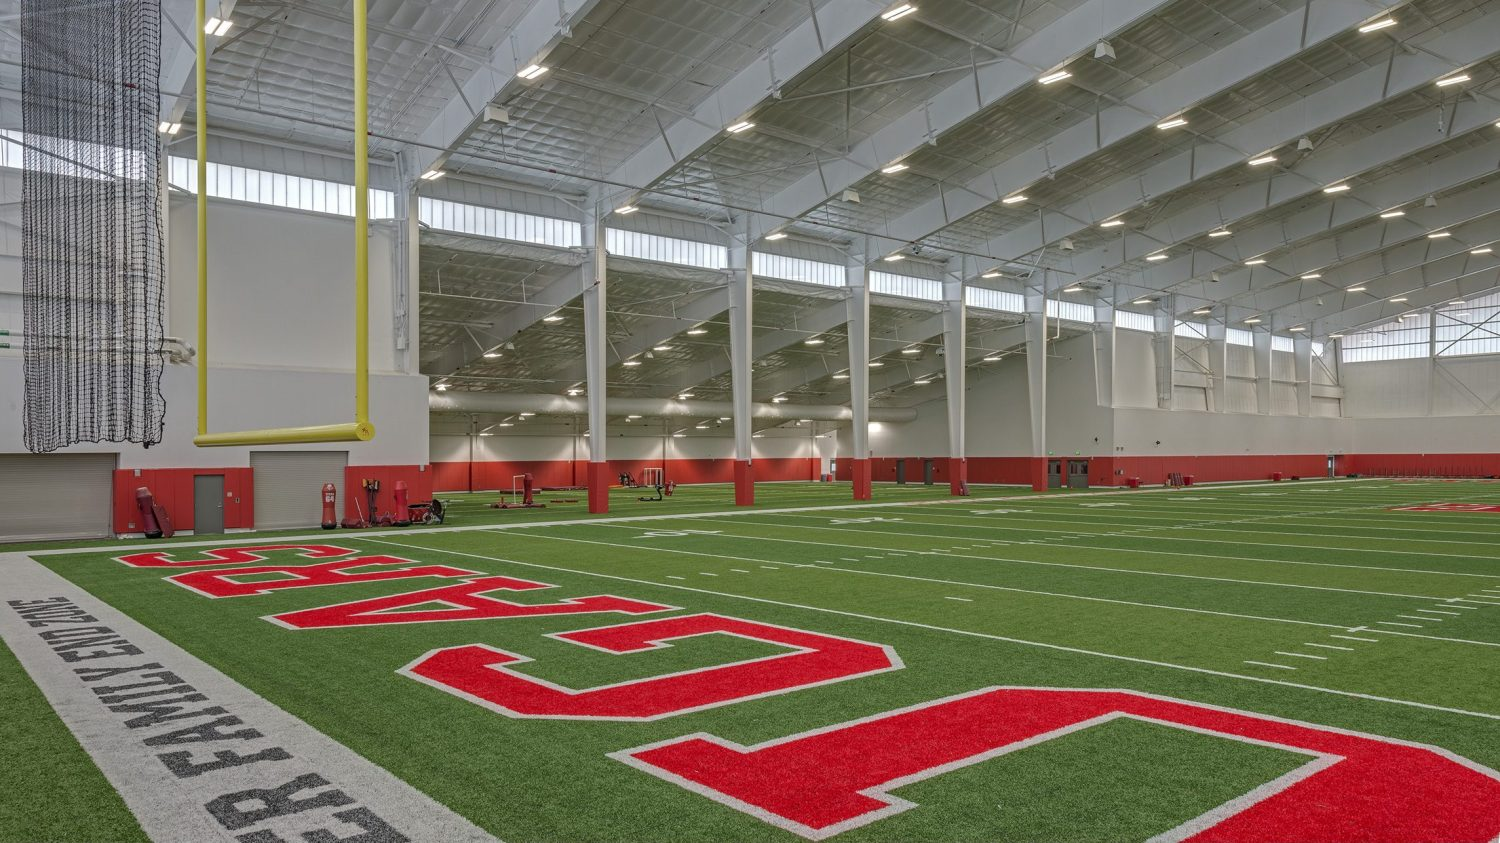 University of Houston Indoor Football Facility - End zone